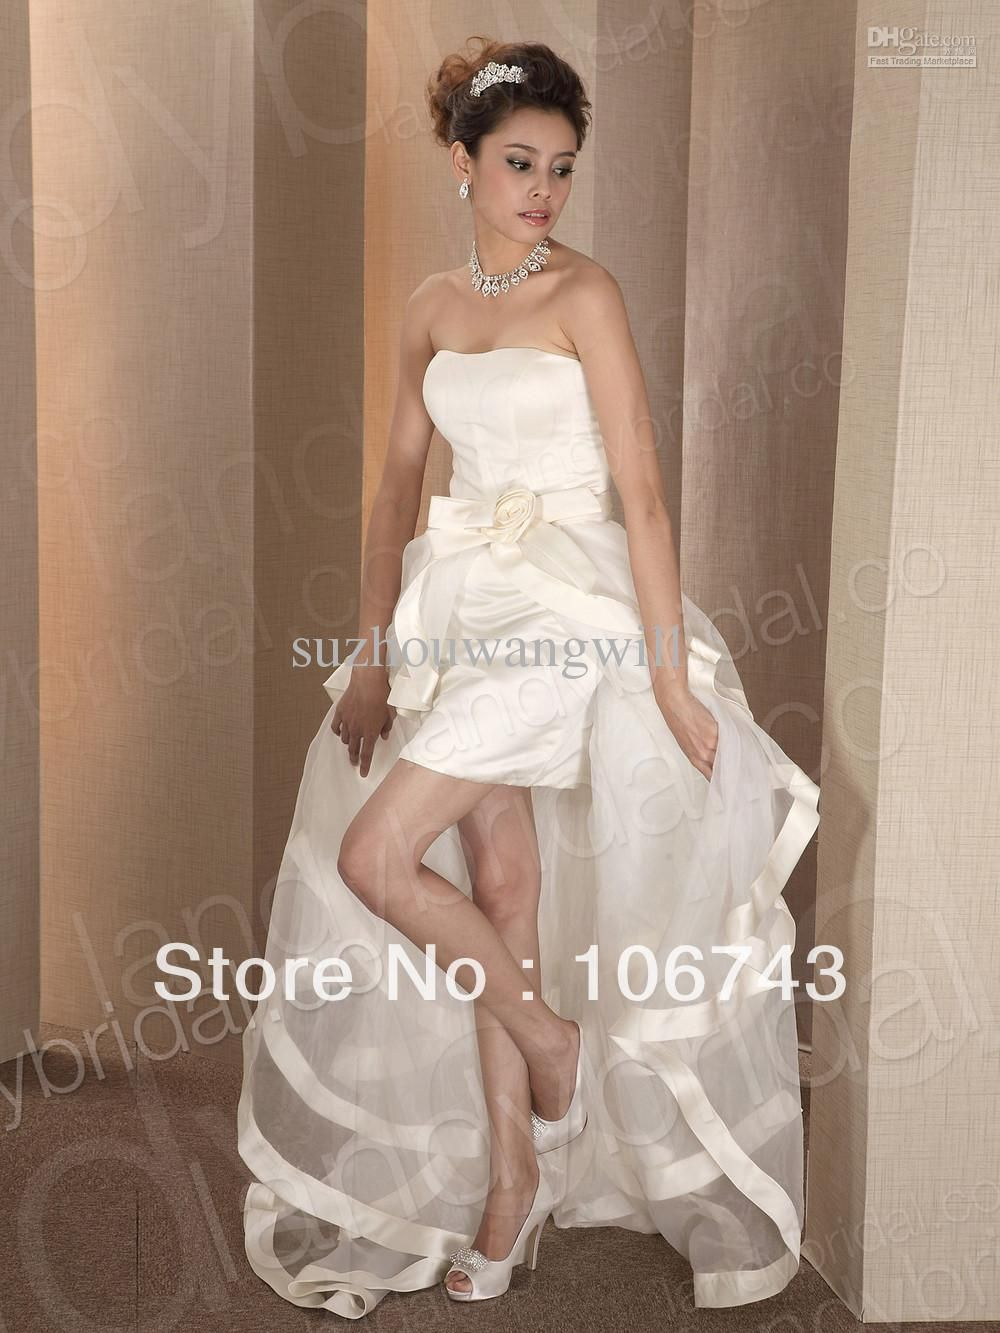 Wholesale High-low Wedding Dress Removable Skirt Short Bridal Gown ...